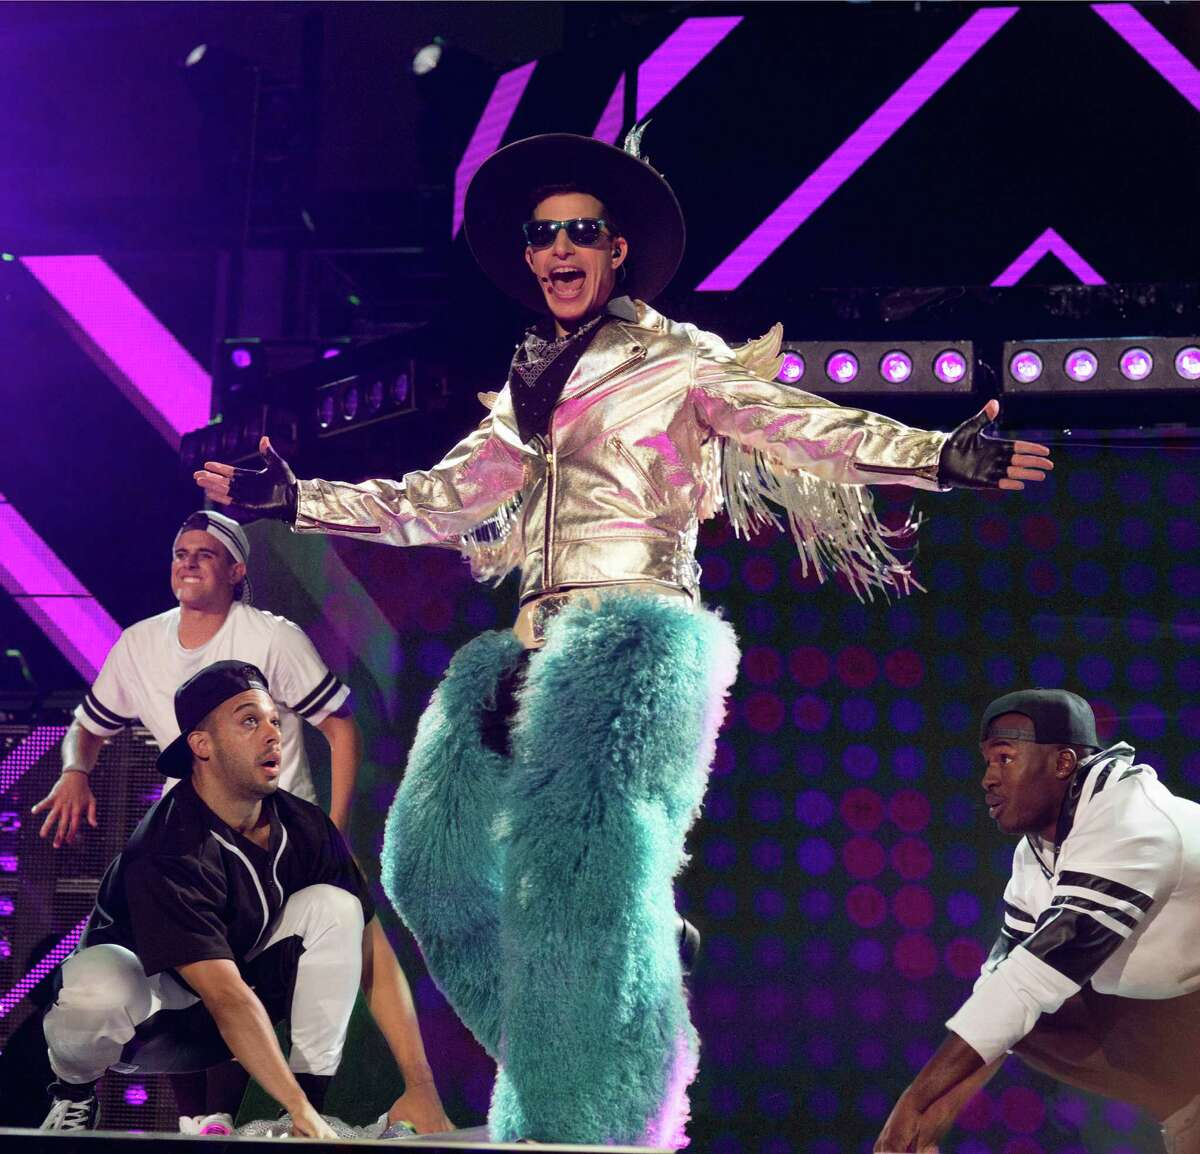 """Andy Samberg stars in """"Popstar: Never Stop Never Stopping,"""" a parody about a Beastie Boys-esque rap group with a Justin Bieber-like frontman."""